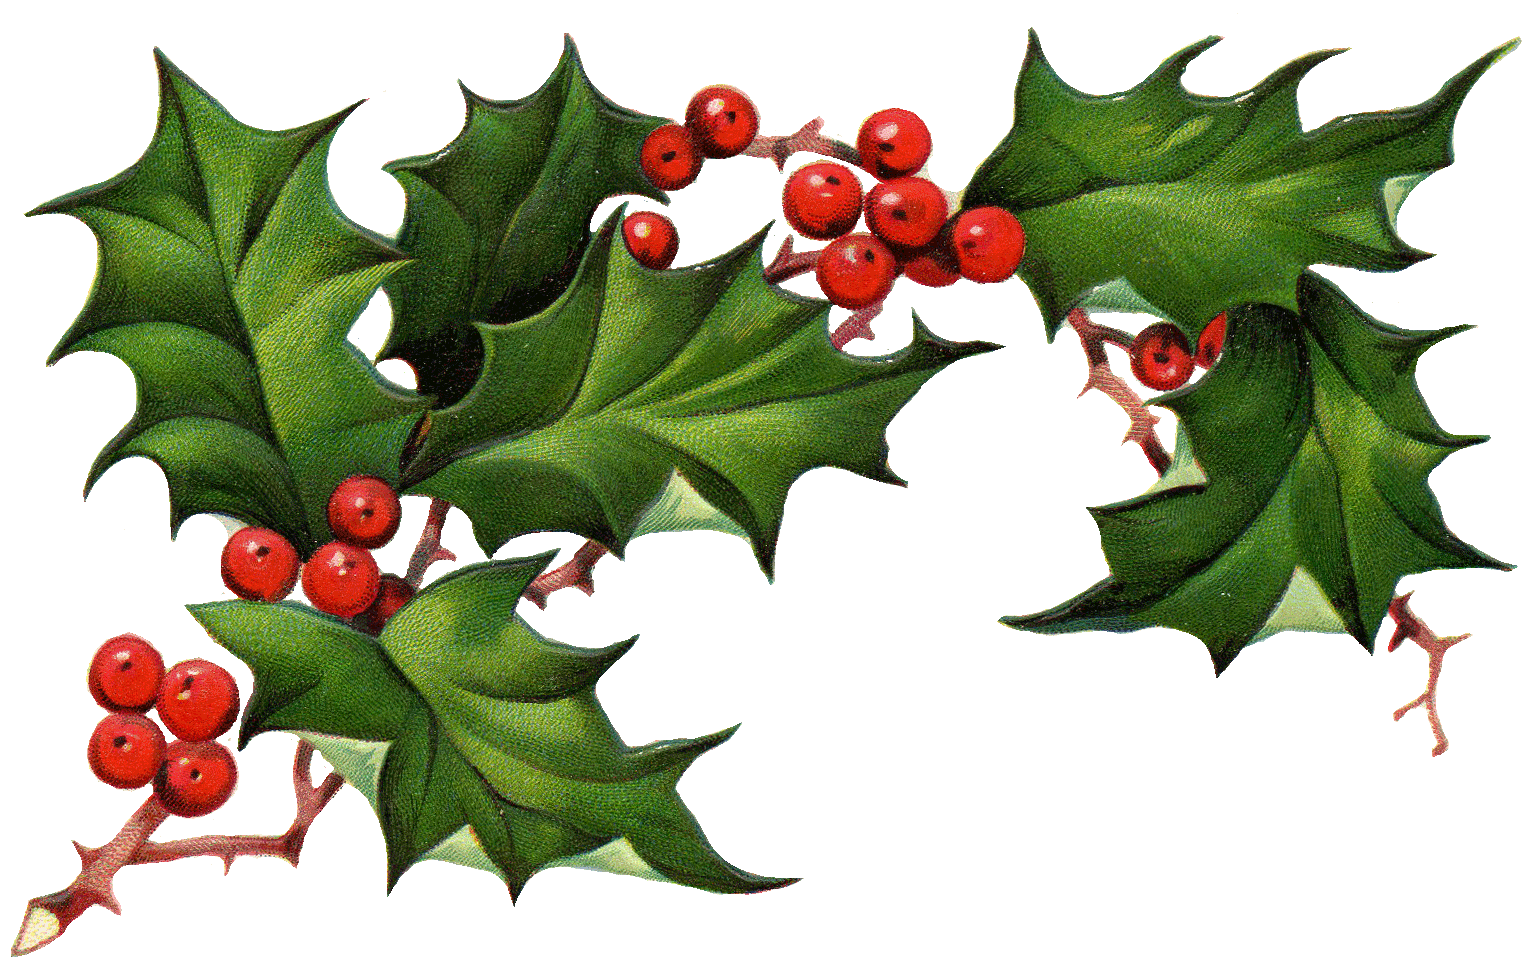 Garland clipart holly and ivy, Garland holly and ivy.